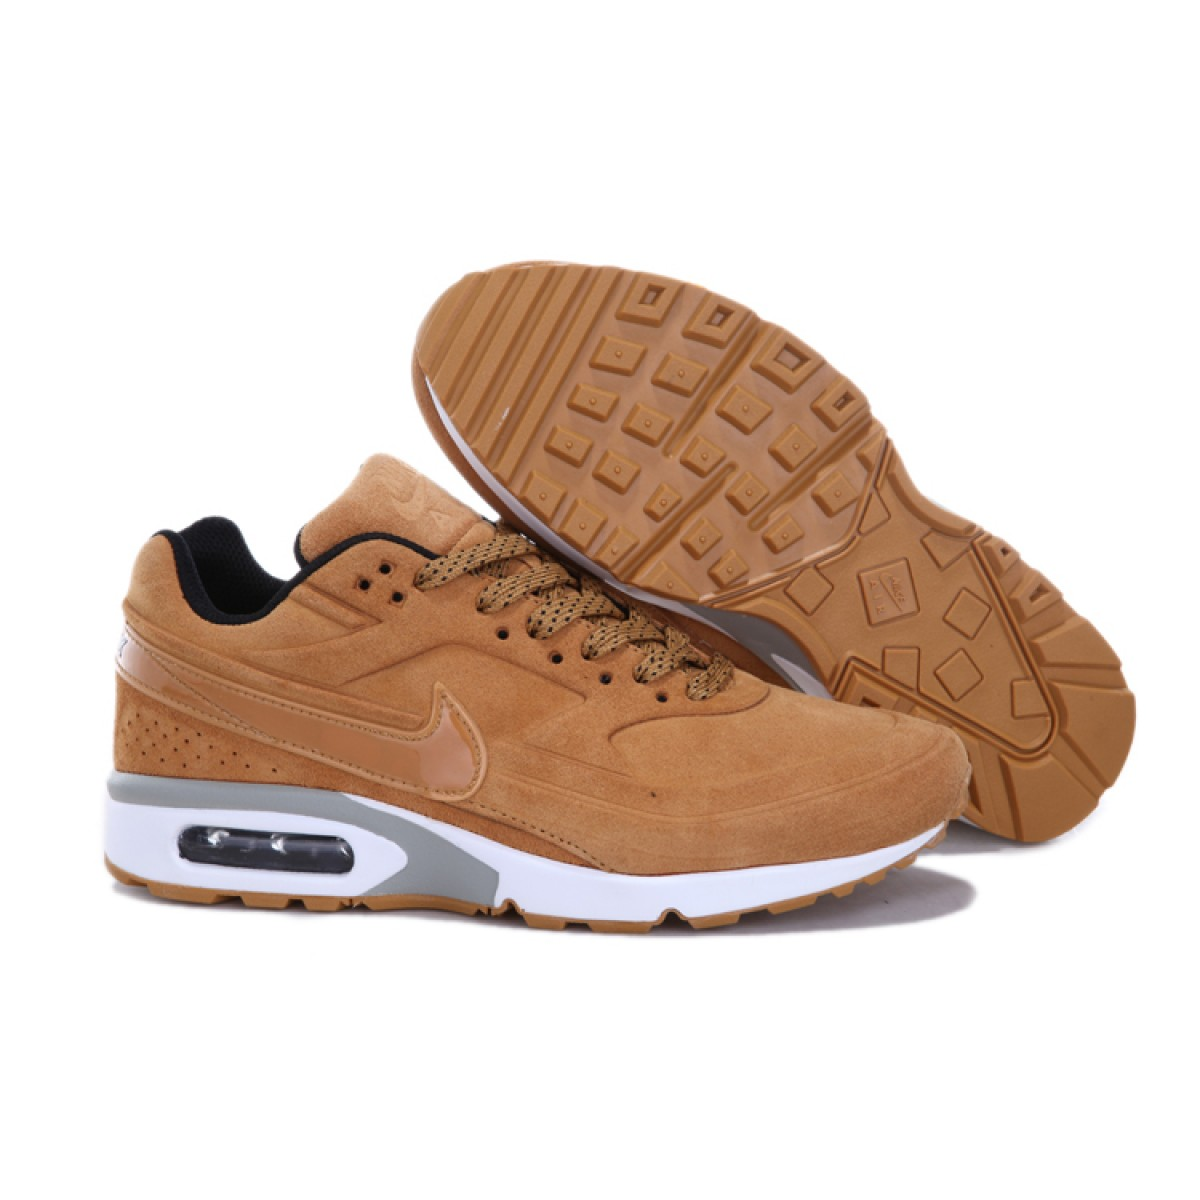 Nike Air Max Bw Marron pas cher Achat Vente Baskets